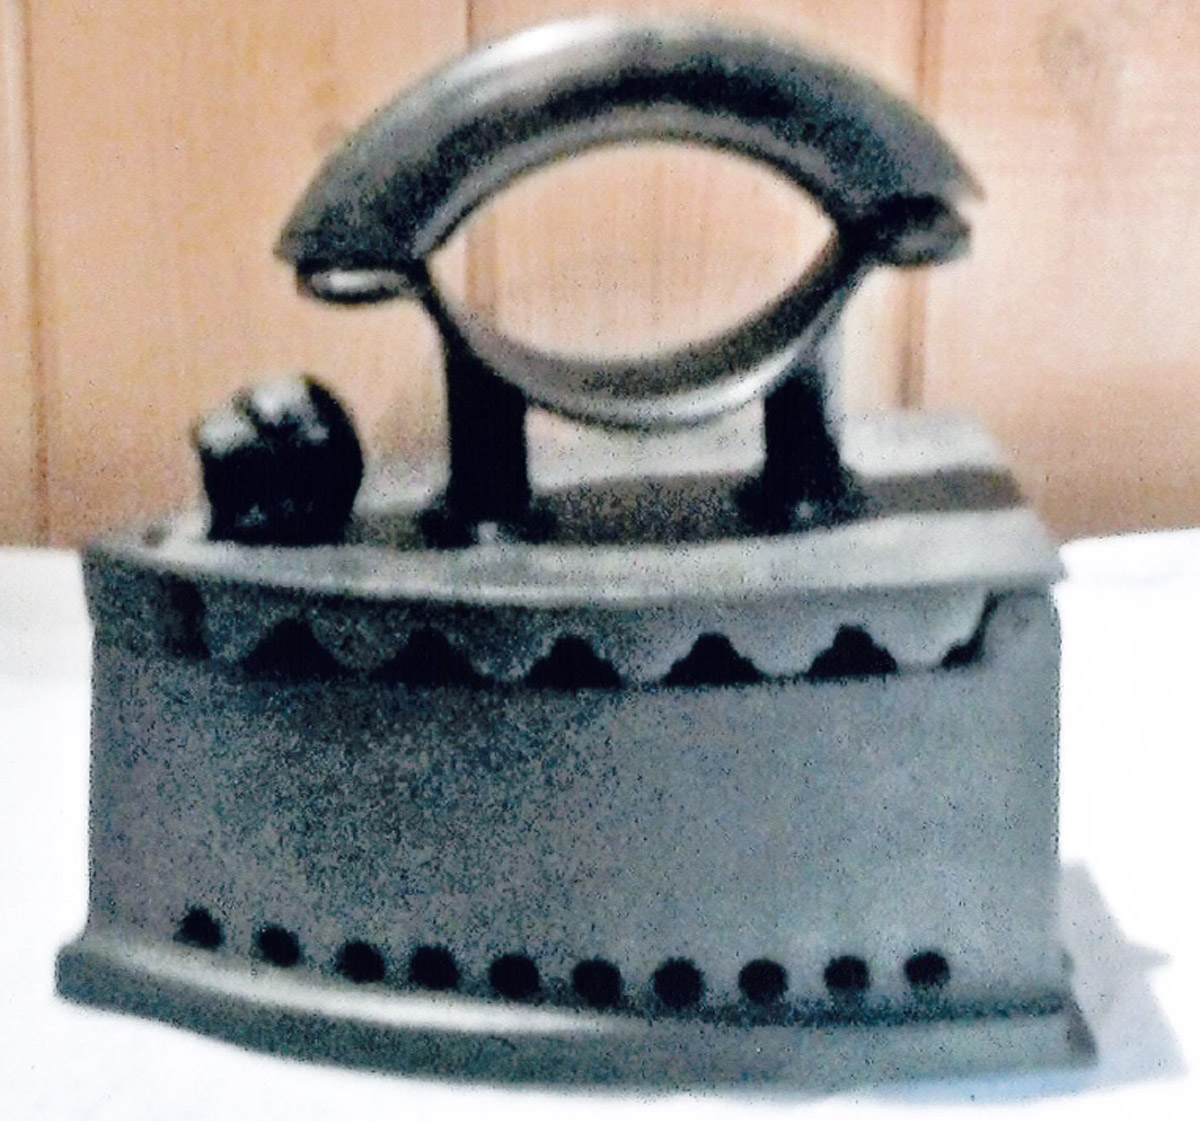 Vintage Coal Iron - 150 for 150 Exhibit